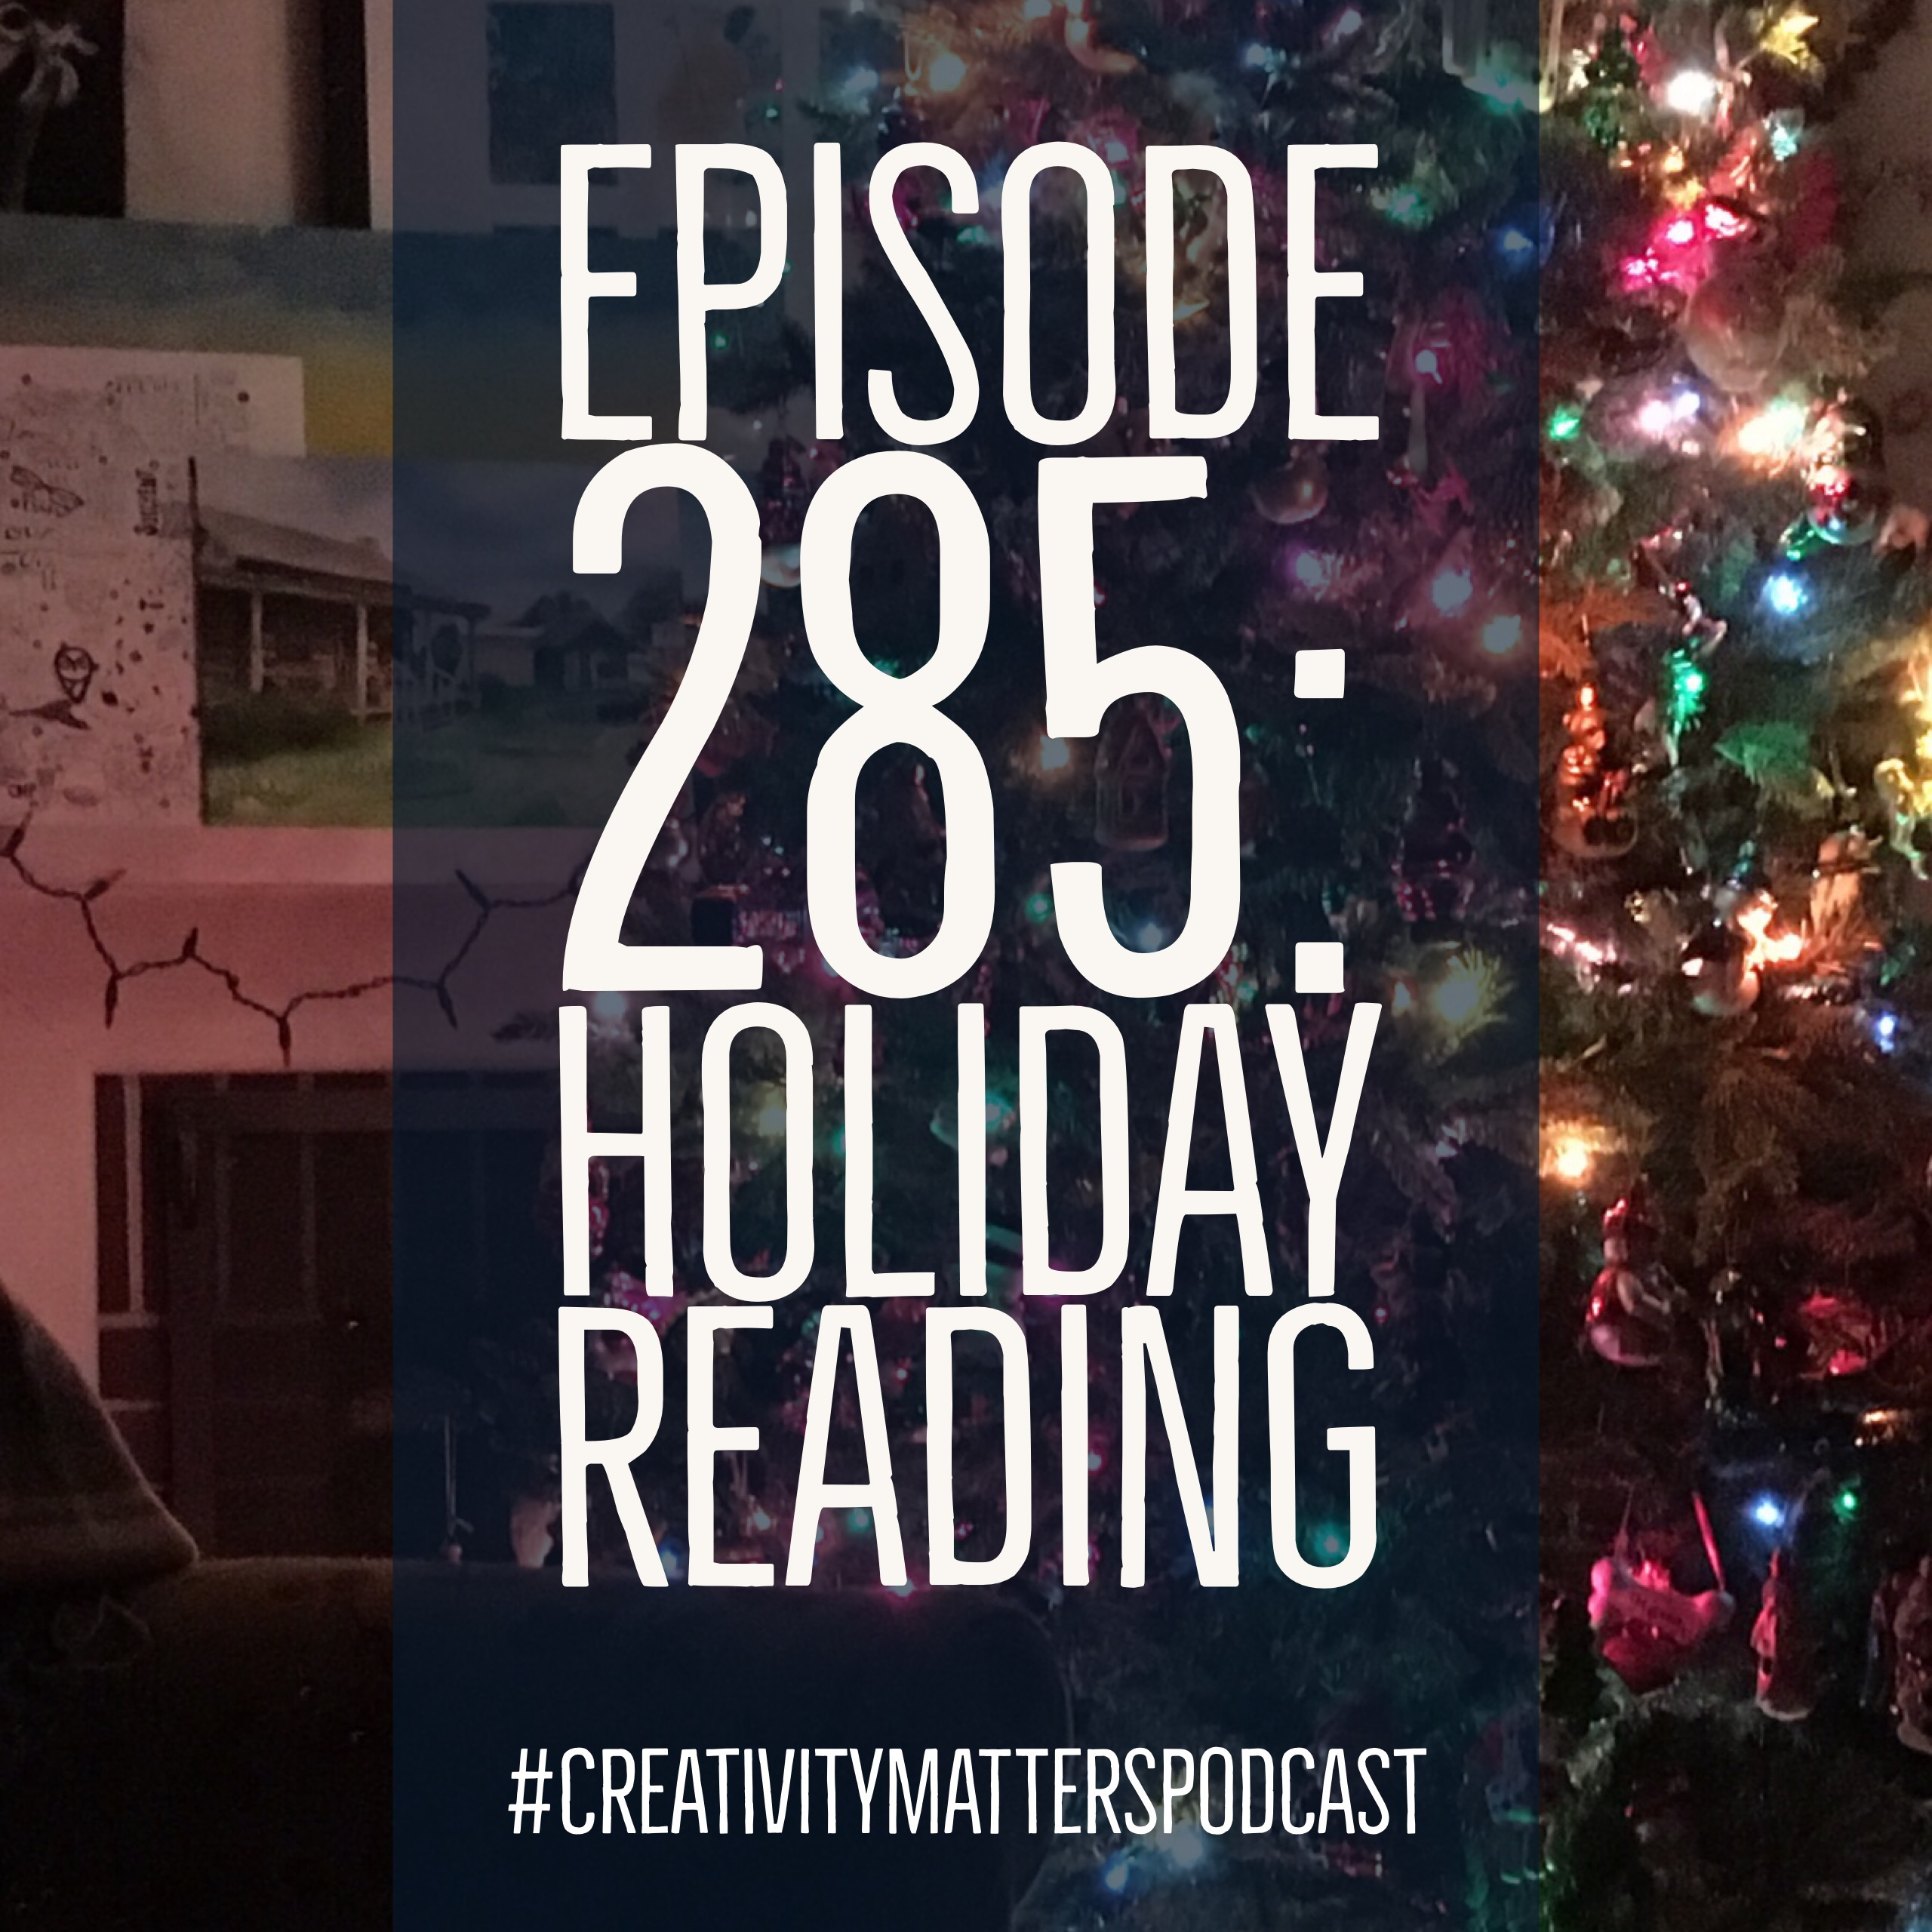 Episode 285: Holiday Reading